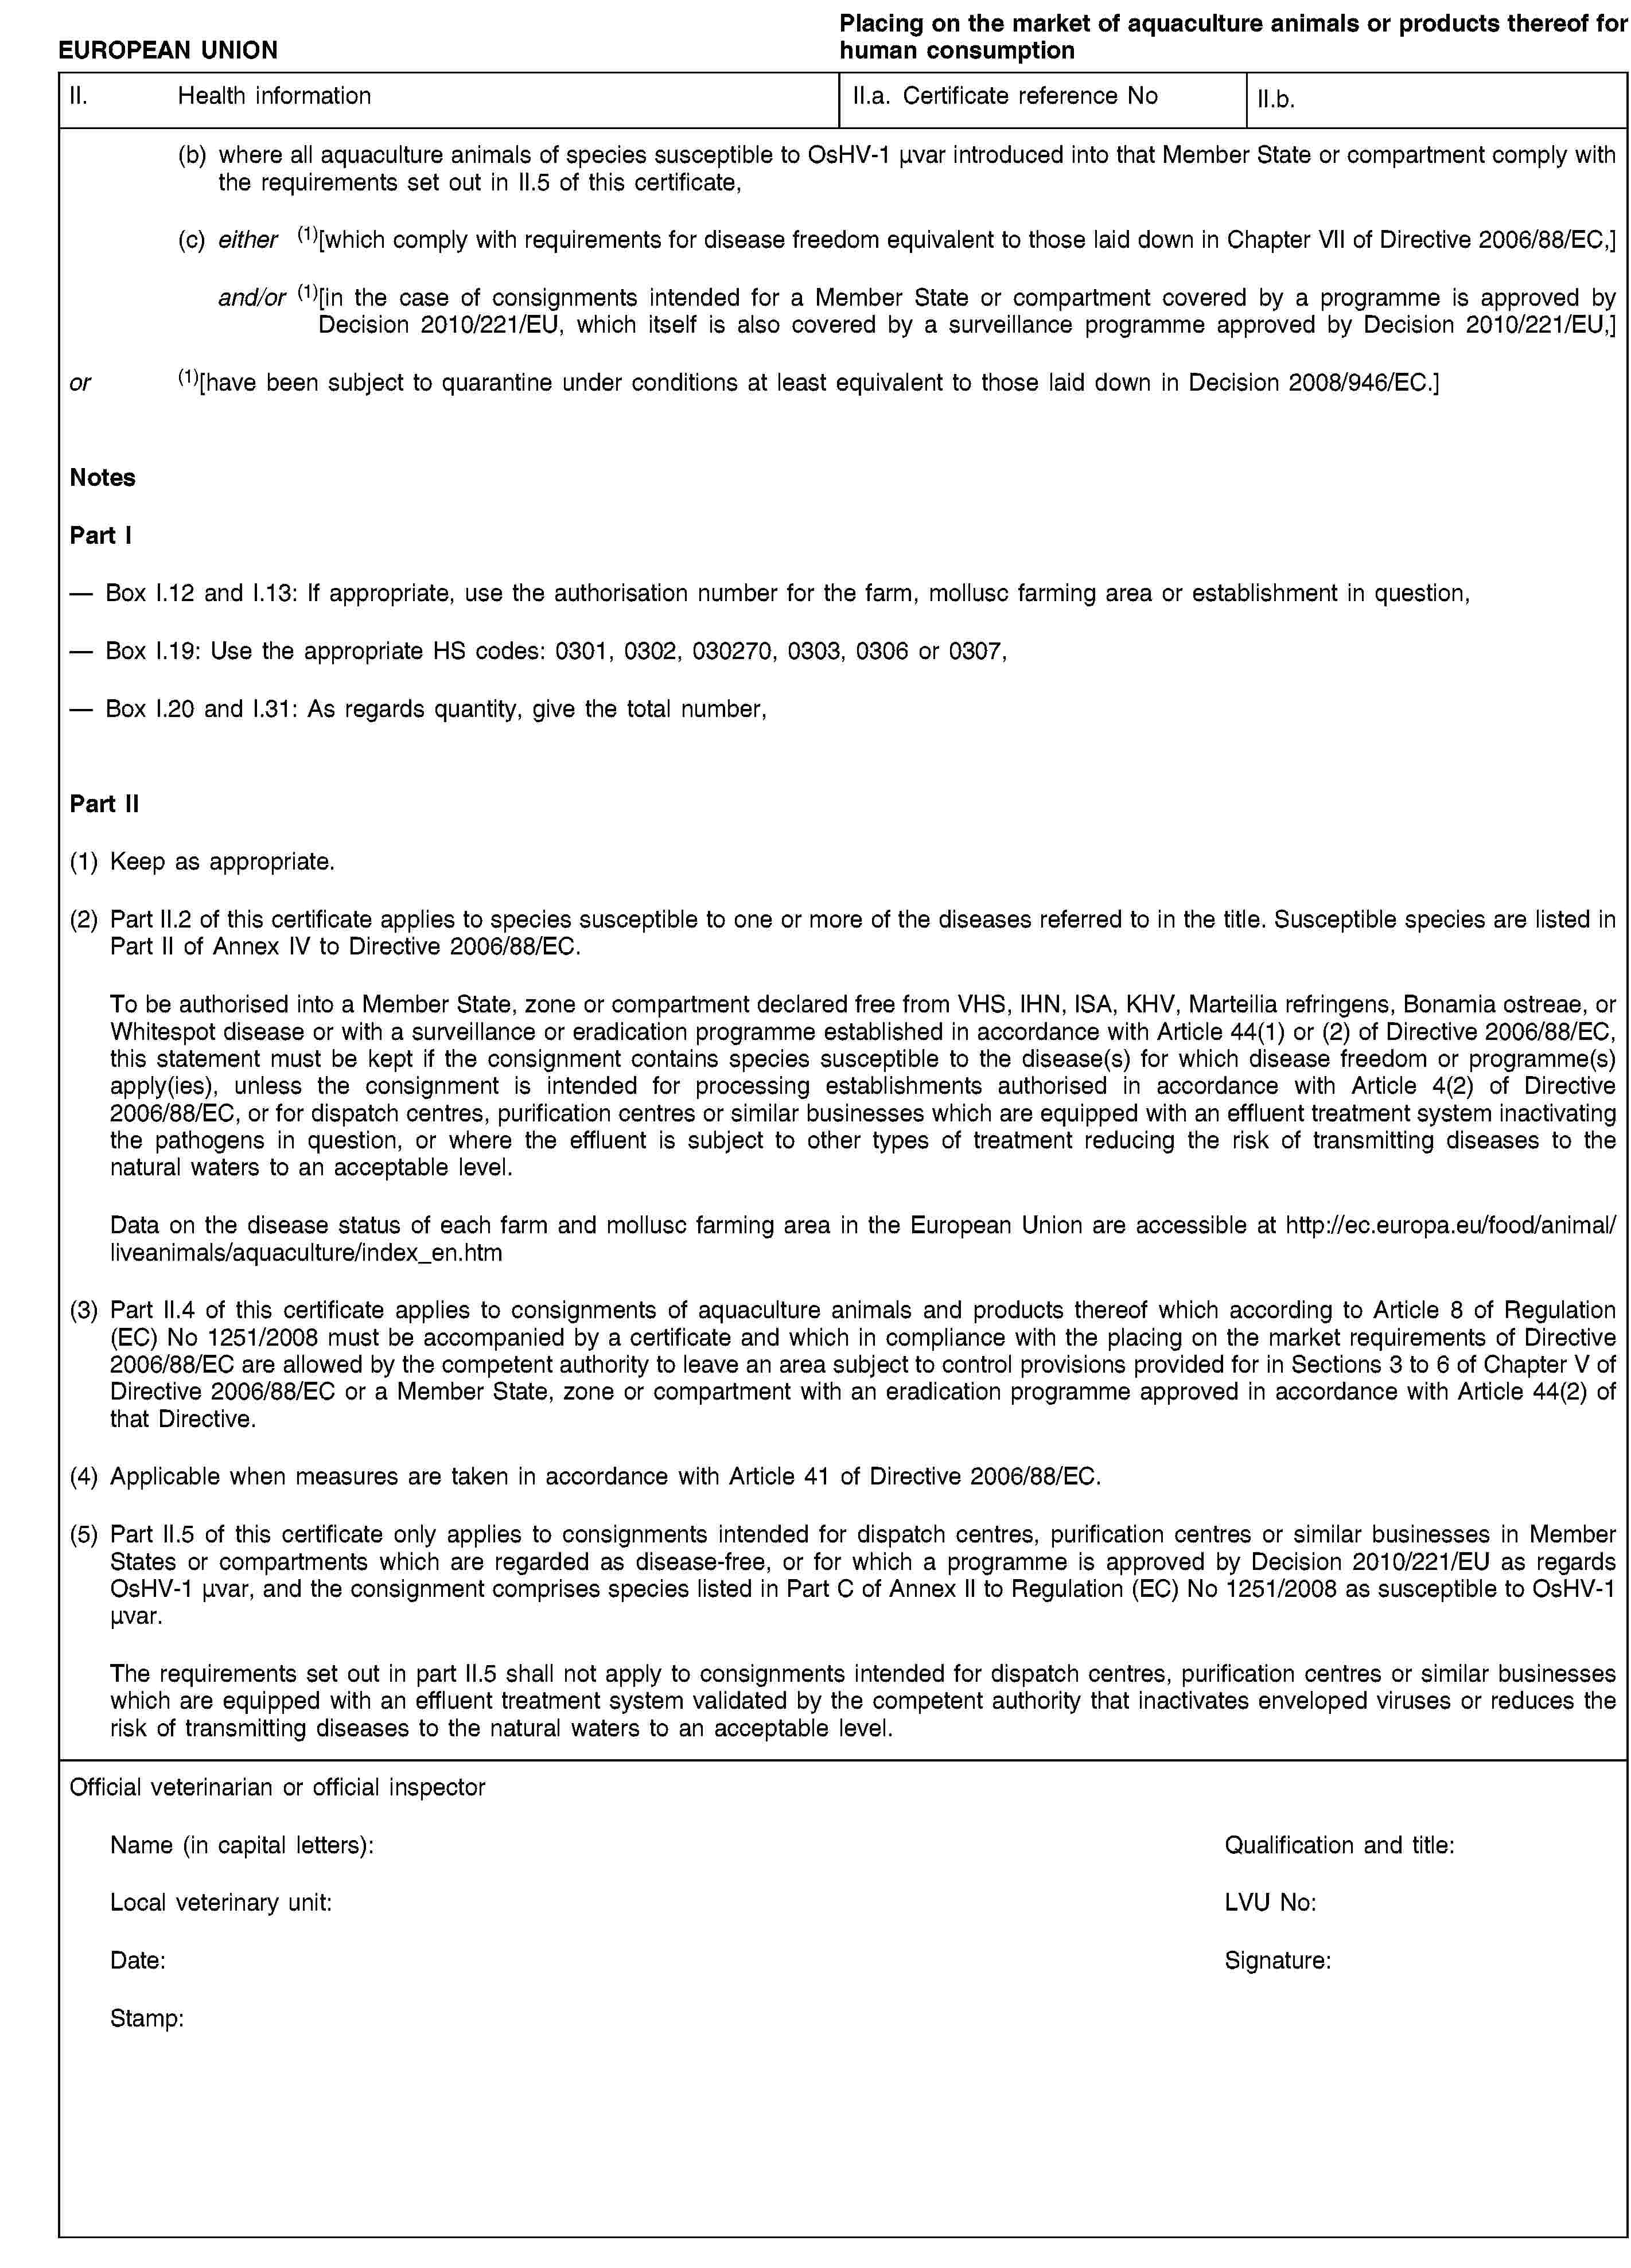 EUROPEAN UNIONPlacing on the market of aquaculture animals or products thereof for human consumptionII. Health informationII.a. Certificate reference NoII.b.(b) where all aquaculture animals of species susceptible to OsHV-1 μνar introduced into that Member State or compartment comply with the requirements set out in II.5 of this certificate,(c) either (1)[which comply with requirements for disease freedom equivalent to those laid down in Chapter VII of Directive 2006/88/EC,]and/or (1)[in the case of consignments intended for a Member State or compartment covered by a programme is approved by Decision 2010/221/EU, which itself is also covered by a surveillance programme approved by Decision 2010/221/EU,]or (1)[have been subject to quarantine under conditions at least equivalent to those laid down in Decision 2008/946/EC.]NotesPart IBox I.12 and I.13: If appropriate, use the authorisation number for the farm, mollusc farming area or establishment in question,Box I.19: Use the appropriate HS codes: 0301, 0302, 030270, 0303, 0306 or 0307,Box I.20 and I.31: As regards quantity, give the total number,Part II(1) Keep as appropriate.(2) Part II.2 of this certificate applies to species susceptible to one or more of the diseases referred to in the title. Susceptible species are listed in Part II of Annex IV to Directive 2006/88/EC.To be authorised into a Member State, zone or compartment declared free from VHS, IHN, ISA, KHV, Marteilia refringens, Bonamia ostreae, or Whitespot disease or with a surveillance or eradication programme established in accordance with Article 44(1) or (2) of Directive 2006/88/EC, this statement must be kept if the consignment contains species susceptible to the disease(s) for which disease freedom or programme(s) apply(ies), unless the consignment is intended for processing establishments authorised in accordance with Article 4(2) of Directive 2006/88/EC, or for dispatch centres, purification centres or similar businesses which are equipped with an effluent treatment system inactivating the pathogens in question, or where the effluent is subject to other types of treatment reducing the risk of transmitting diseases to the natural waters to an acceptable level.Data on the disease status of each farm and mollusc farming area in the European Union are accessible at http://ec.europa.eu/food/animal/liveanimals/aquaculture/index_en.htm(3) Part II.4 of this certificate applies to consignments of aquaculture animals and products thereof which according to Article 8 of Regulation (EC) No 1251/2008 must be accompanied by a certificate and which in compliance with the placing on the market requirements of Directive 2006/88/EC are allowed by the competent authority to leave an area subject to control provisions provided for in Sections 3 to 6 of Chapter V of Directive 2006/88/EC or a Member State, zone or compartment with an eradication programme approved in accordance with Article 44(2) of that Directive.(4) Applicable when measures are taken in accordance with Article 41 of Directive 2006/88/EC.(5) Part II.5 of this certificate only applies to consignments intended for dispatch centres, purification centres or similar businesses in Member States or compartments which are regarded as disease-free, or for which a programme is approved by Decision 2010/221/EU as regards OsHV-1 μνar, and the consignment comprises species listed in Part C of Annex II to Regulation (EC) No 1251/2008 as susceptible to OsHV-1 μνar.The requirements set out in part II.5 shall not apply to consignments intended for dispatch centres, purification centres or similar businesses which are equipped with an effluent treatment system validated by the competent authority that inactivates enveloped viruses or reduces the risk of transmitting diseases to the natural waters to an acceptable level.Official veterinarian or official inspectorName (in capital letters):Qualification and title:Local veterinary unit:LVU No:Date:Signature:Stamp: